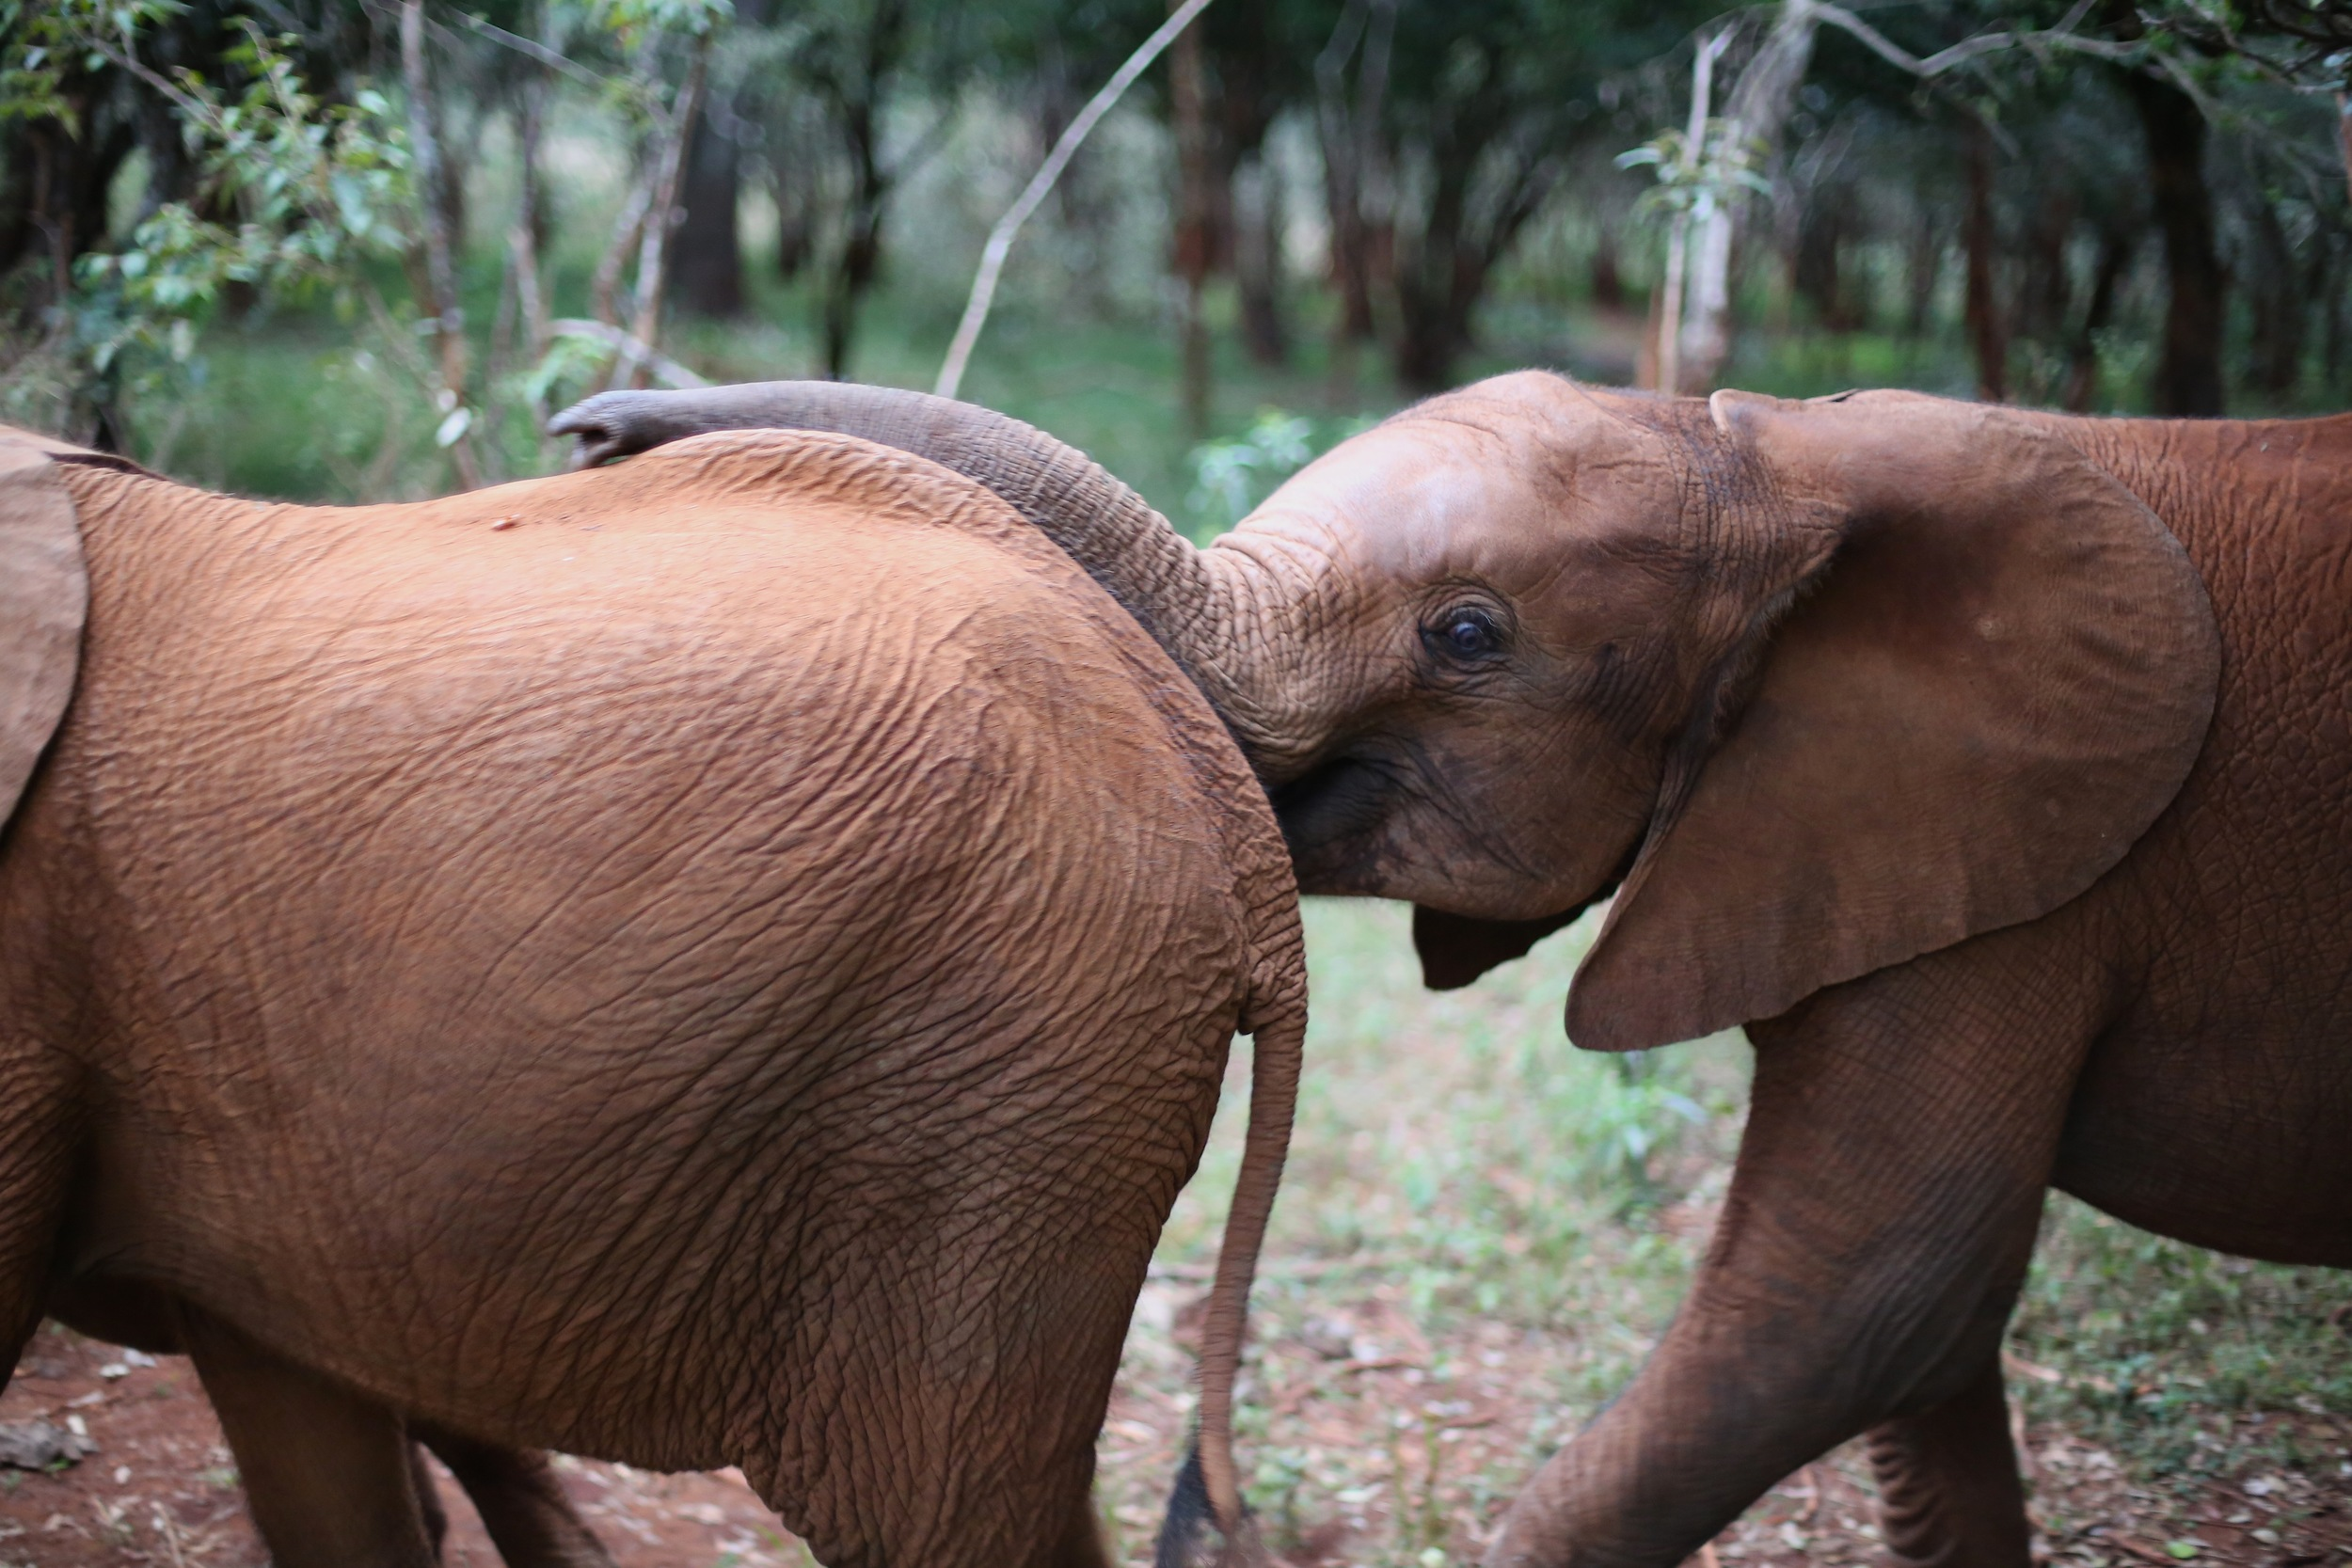 Every morning the orphaned elephants are led out to Nairobi national park, where they spend the day playing and grazing